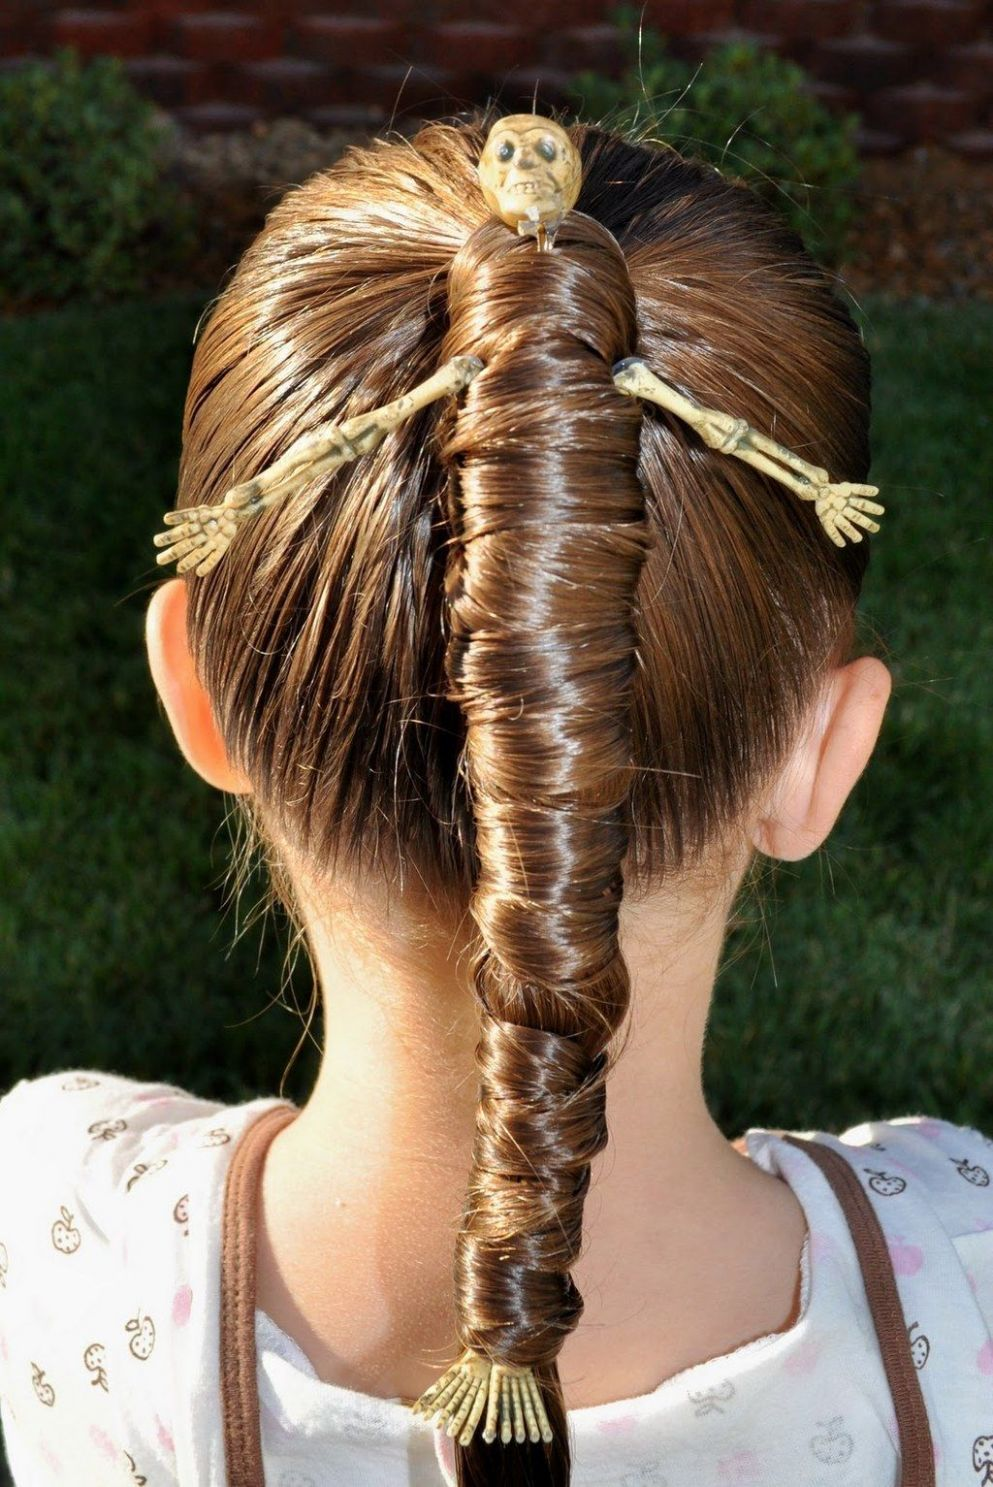 12 Impossibly Cute Halloween Hair Ideas That Require No Costume ..